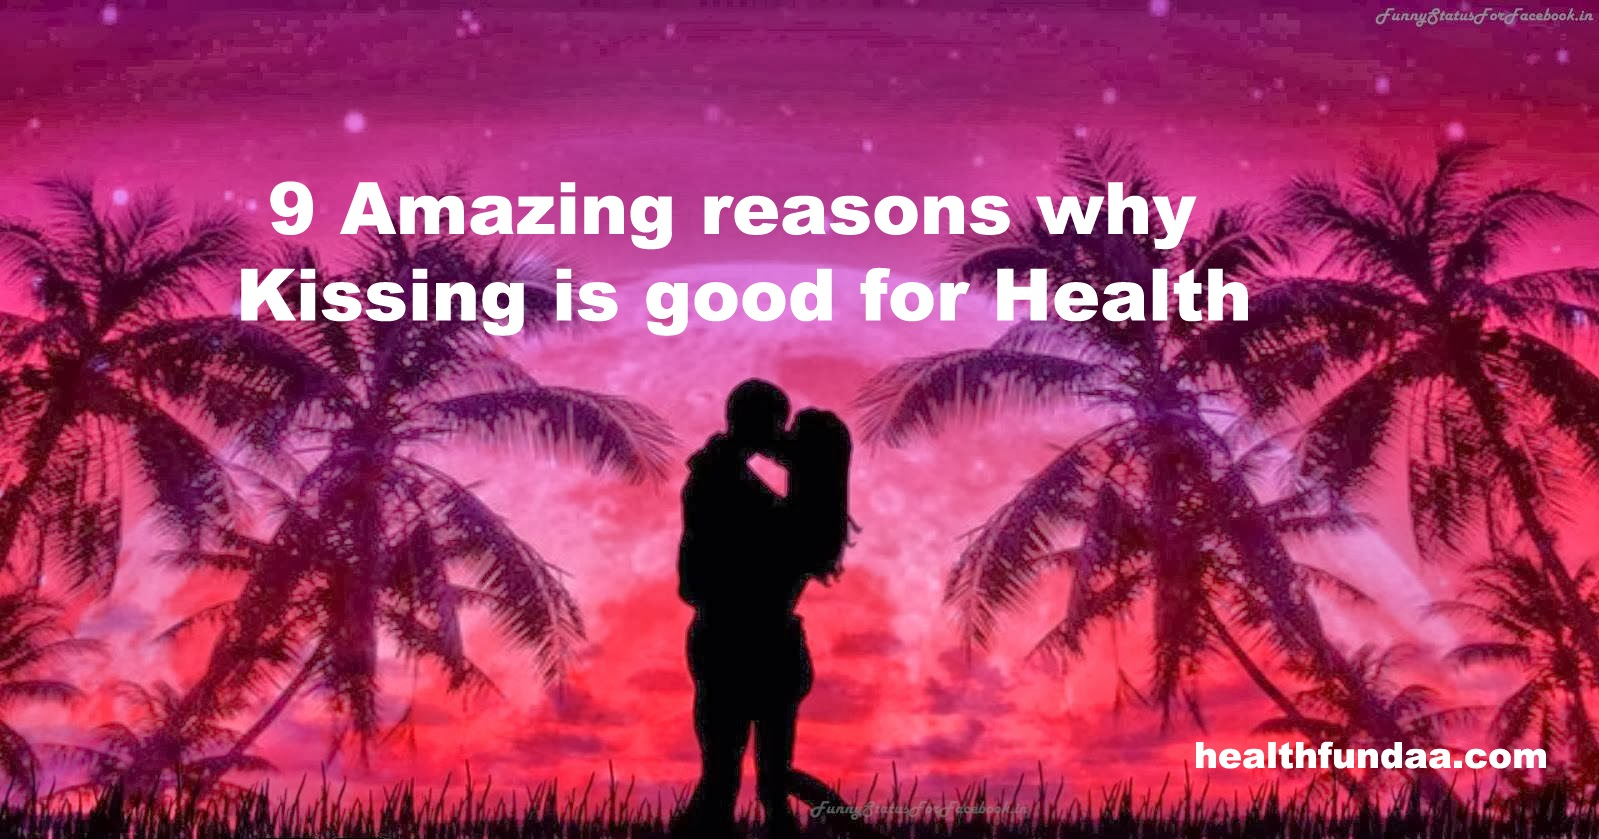 9 Amazing reasons why Kissing is good for Health